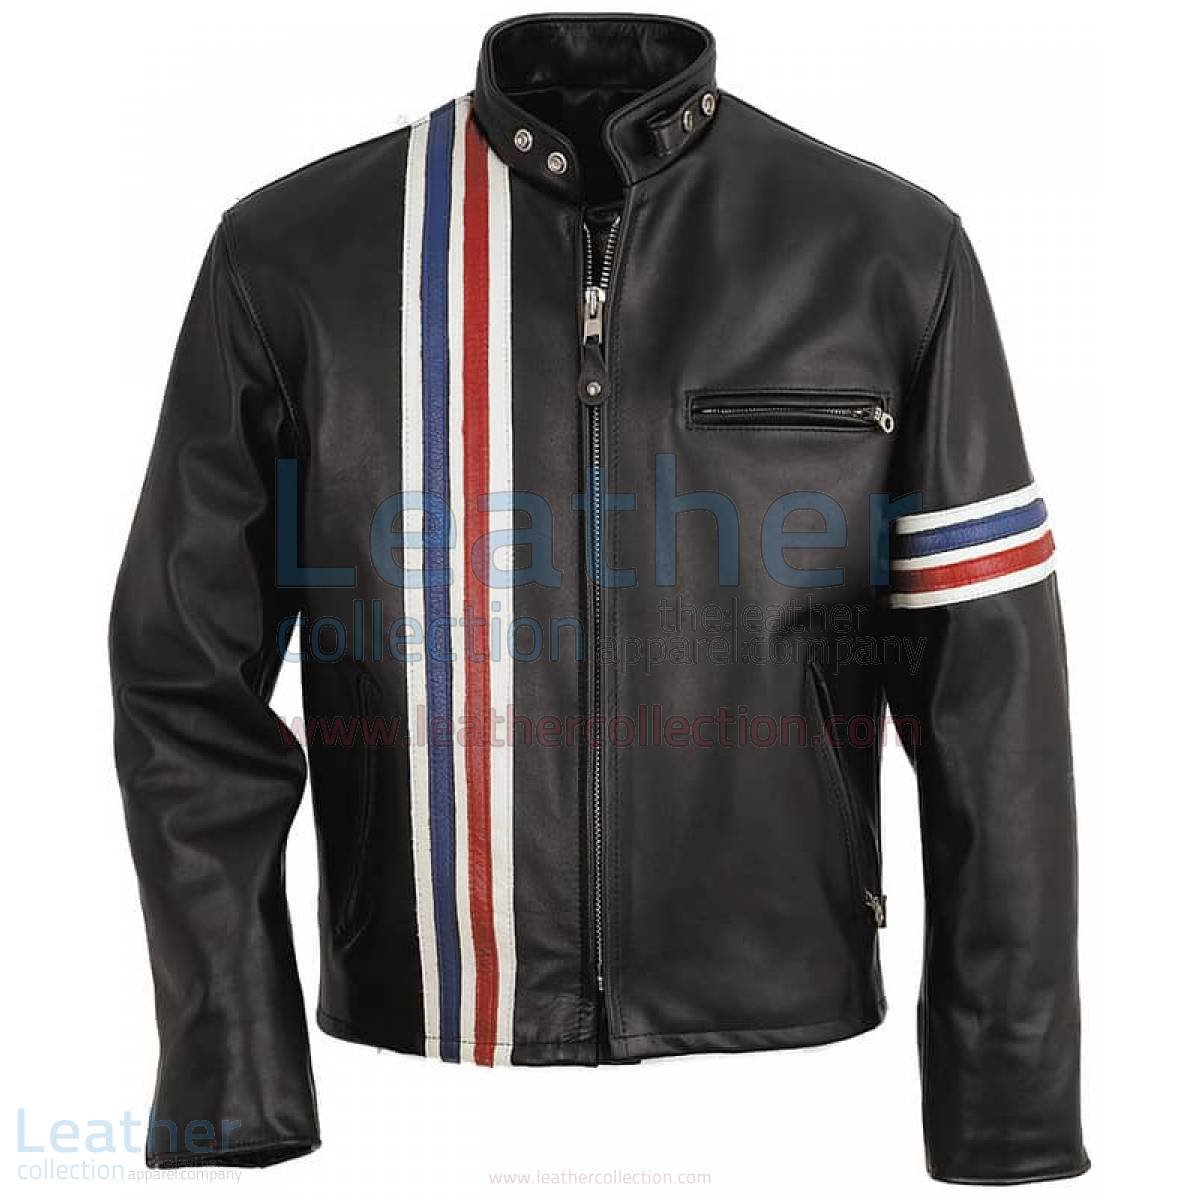 Vertical Stripes Biker Fashion Leather Jacket